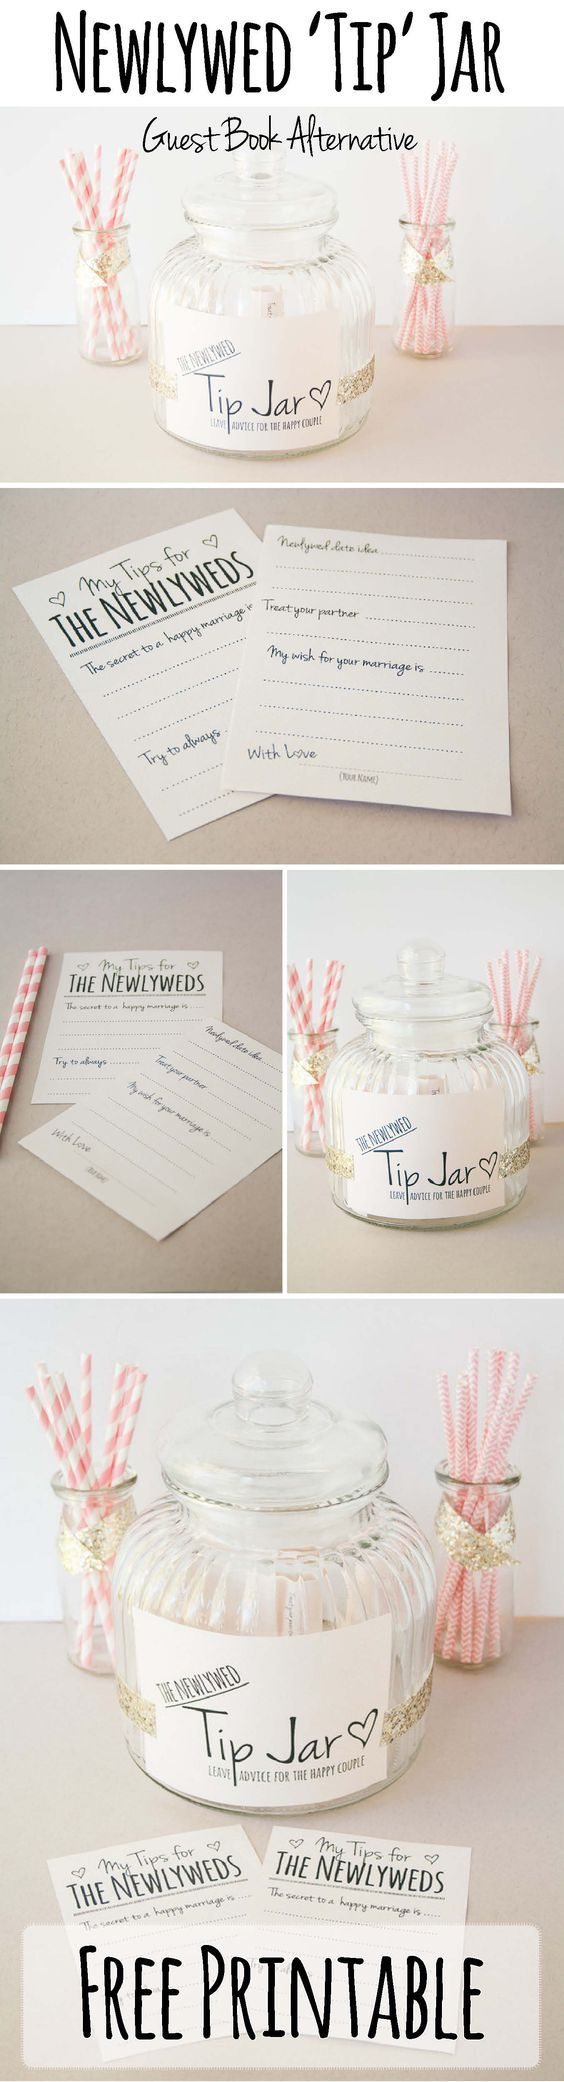 "Newly Wed Tip Jar www.confettidaydr… Here's how to make this cute Tip Jar for your wedding as an adorable guest book alternative! DIY Guest Book Alternative: Newlywed Advice ♥ DIY Newlywed 'TIP' Jar Guest Book Alternative Time to Complete: Less than 15 minutes Skill Level: Very Easy The Newly Wed Tip Jar is a fun … Continue reading """"Leave Us A Tip"" Jar – FREE PRINTABLE guestbook alternative"""